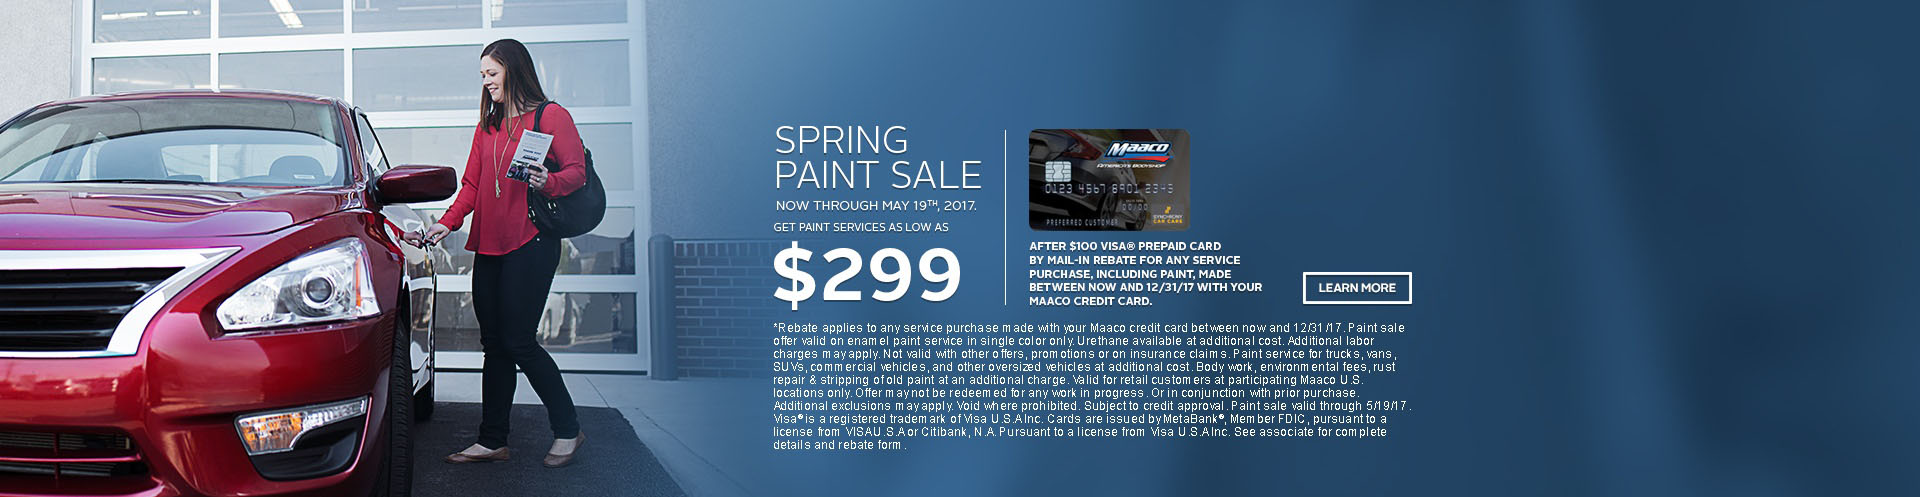 Maaco: Spring Paint Sale Starting at $299 after $100 rebate from using your Maaco Credit Card, click Learn More for further details.